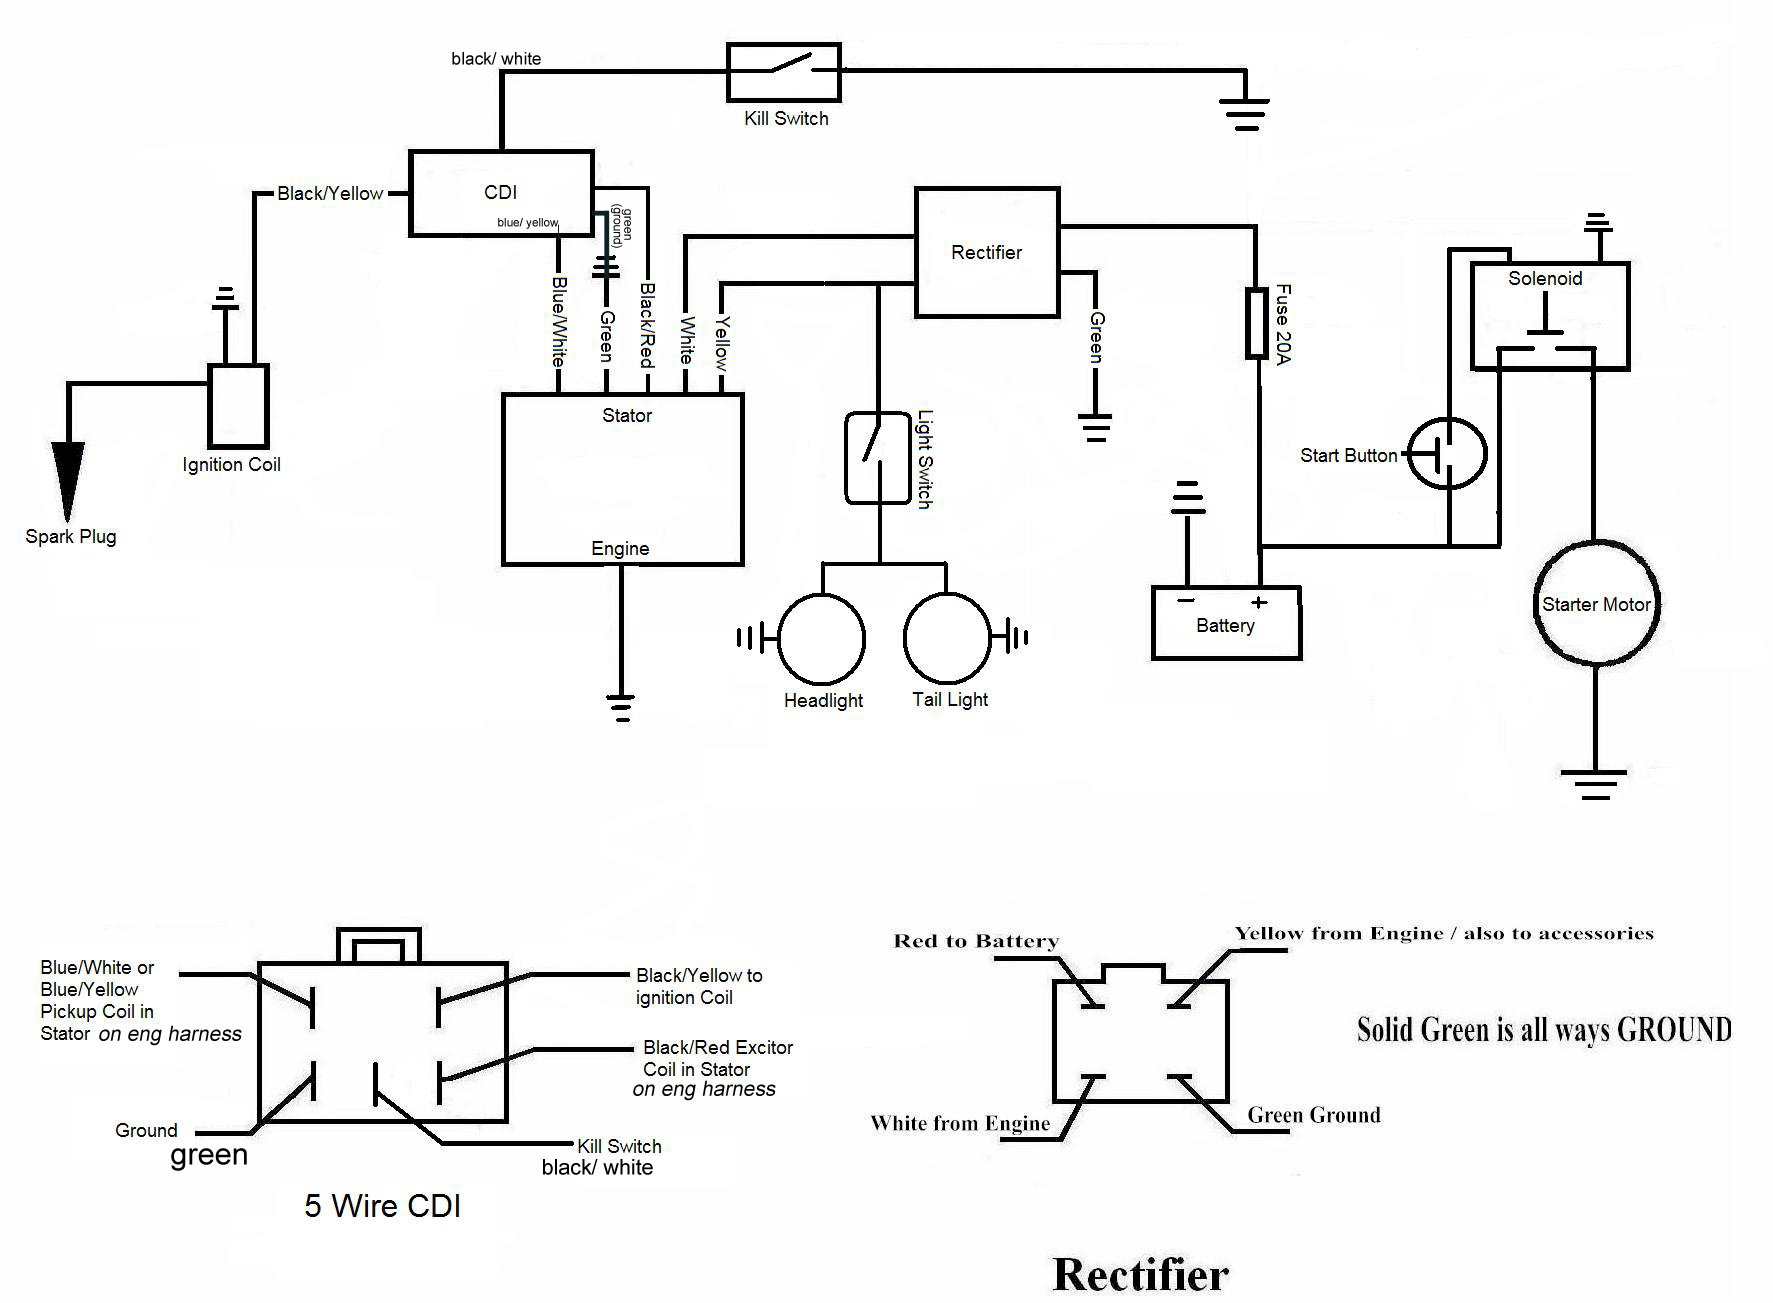 110 Chinese Atv Solenoid Wiring Diagram Schematic Wiring New 125 Lifan Help Page 4 C90club Co Uk